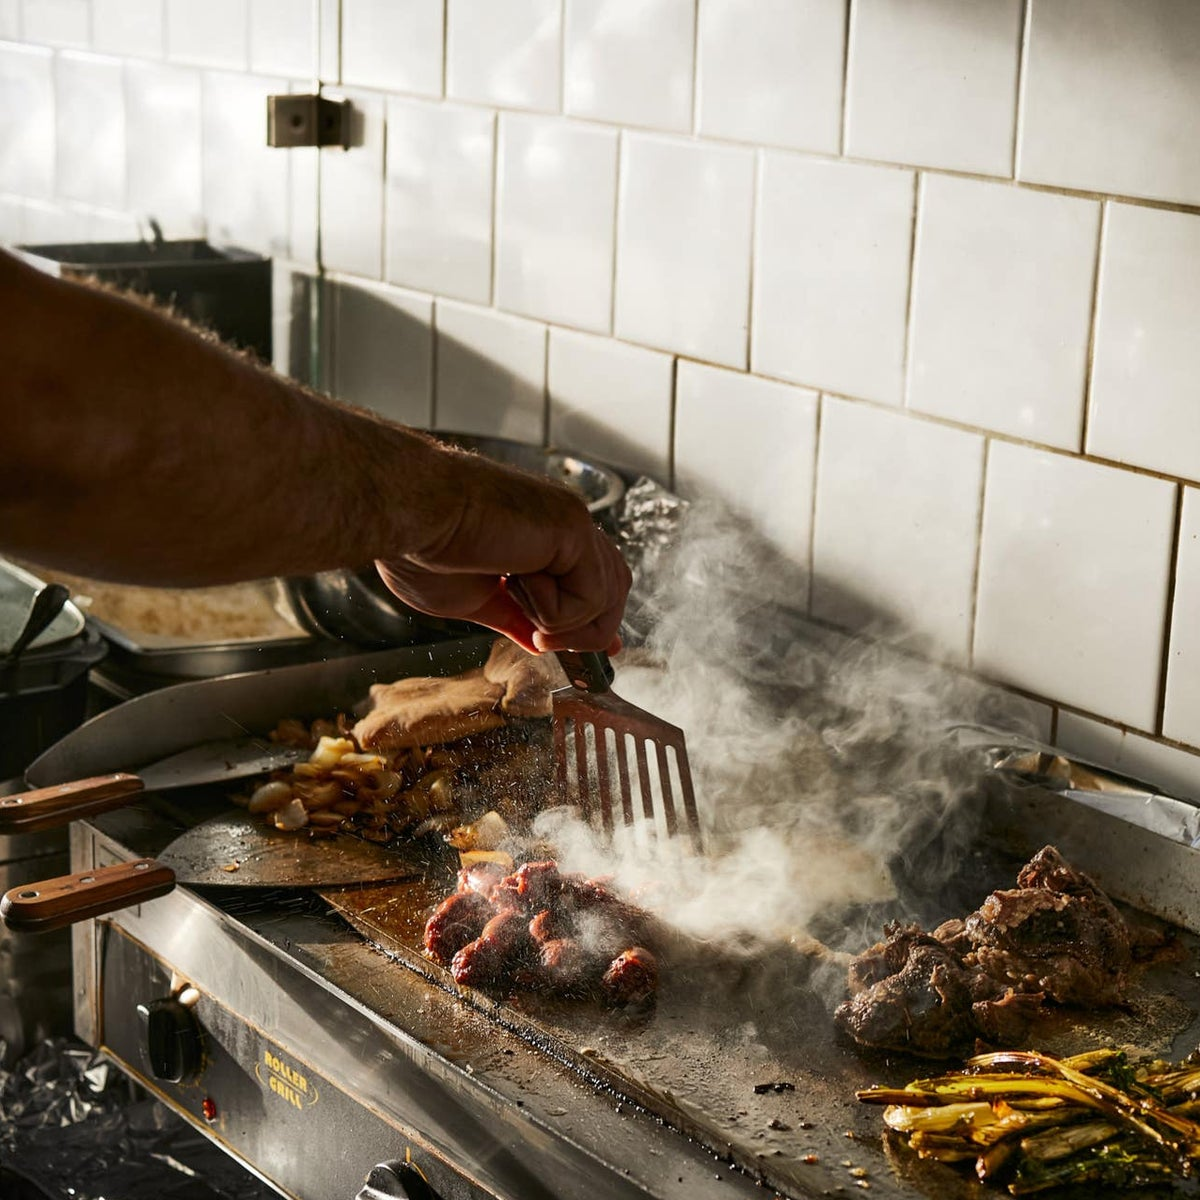 In for the grill: Preparing food for hungrey diners at Zalmanico, Jaffa.